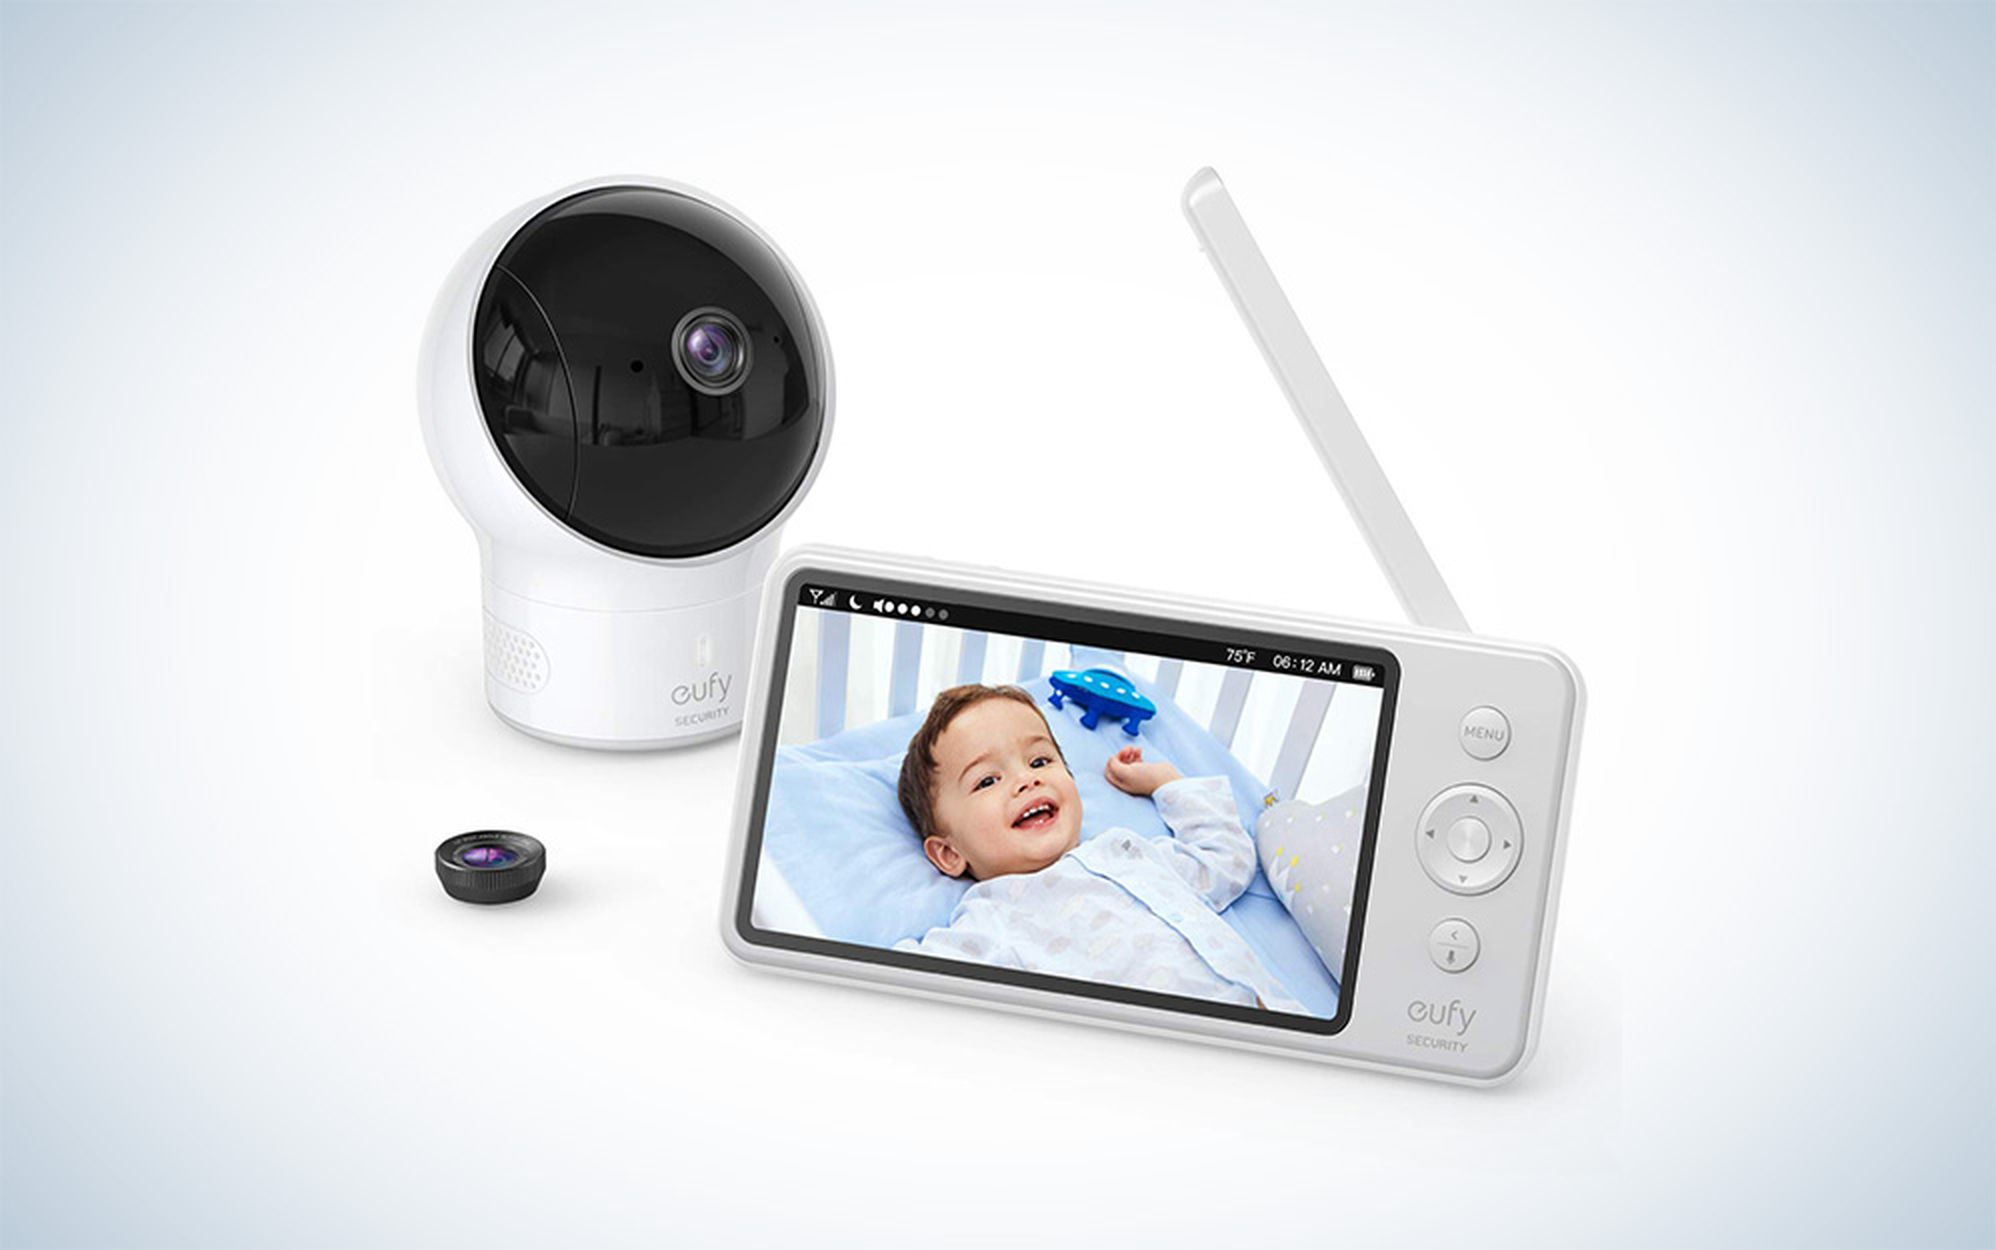 Baby Monitor, eufy Security Spaceview S Video Monitor, Peace of Mind for New Moms, 5 inch LCD Display, 110° Wide-Angle Lens Included, 720p HD, Lullaby Mode, Night Vision, Day-Long Battery, Crib Mount